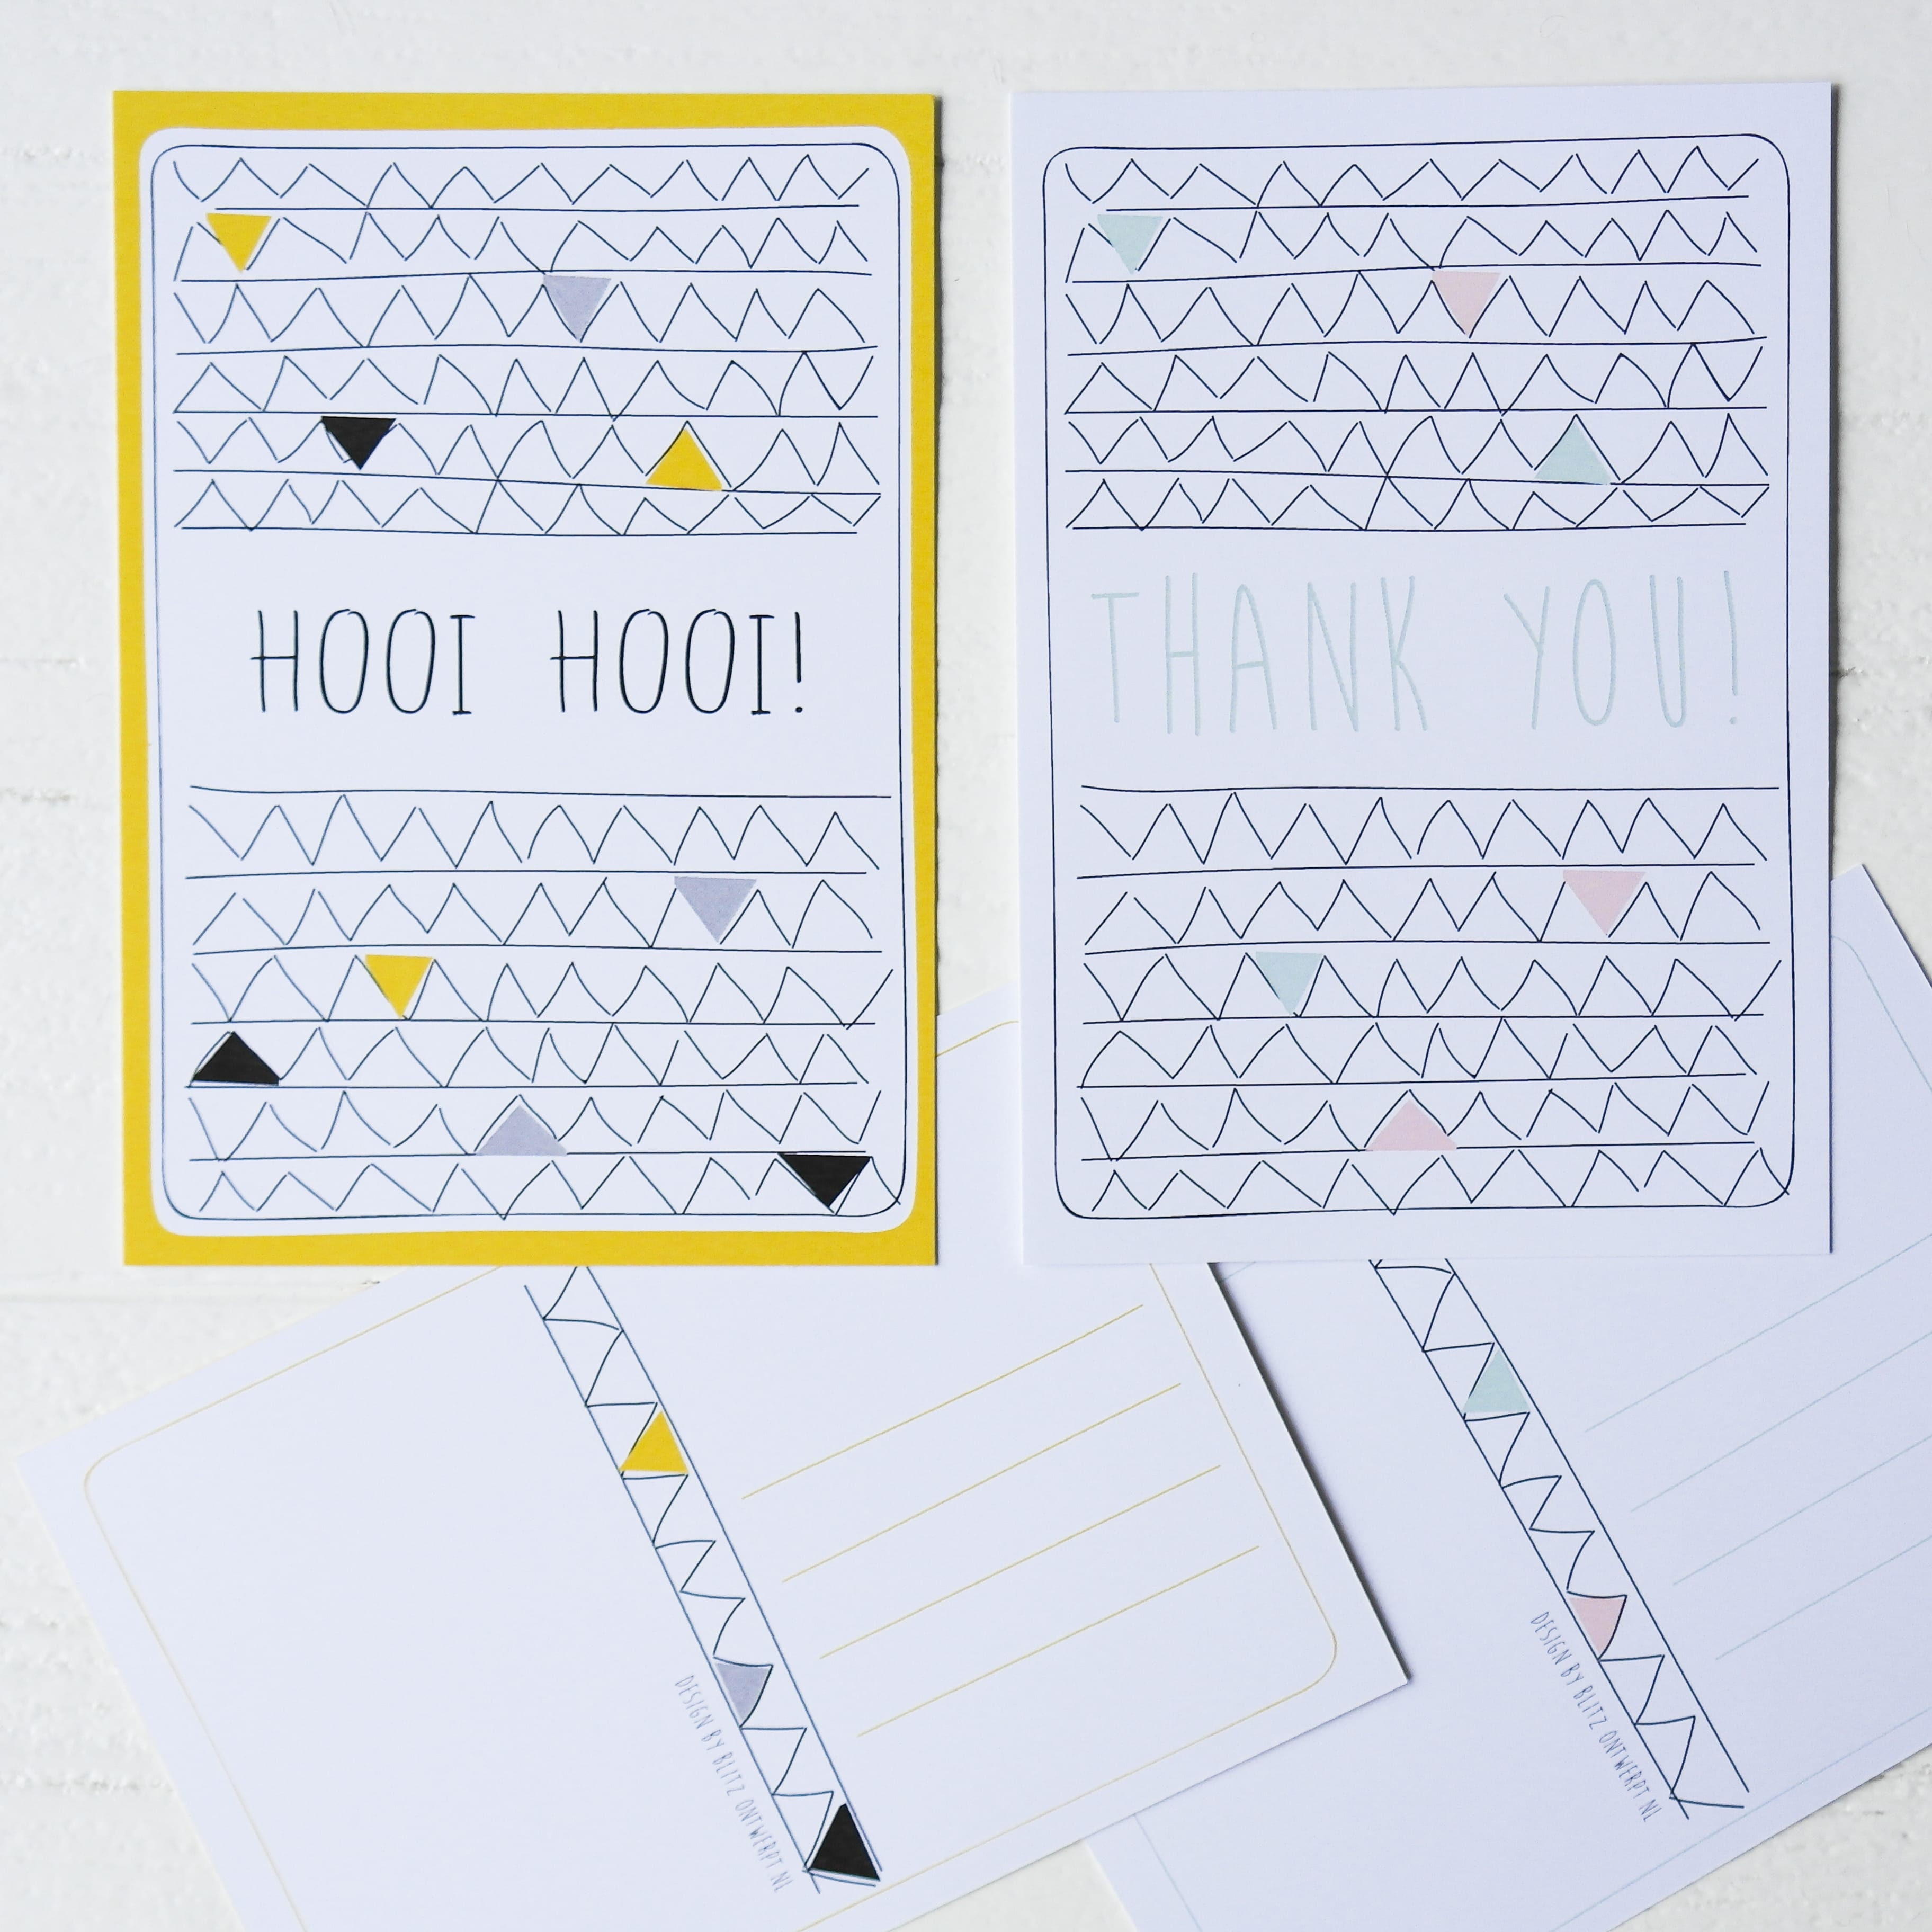 Ansichtkaart illustratie Hooi hooi_Thank you set